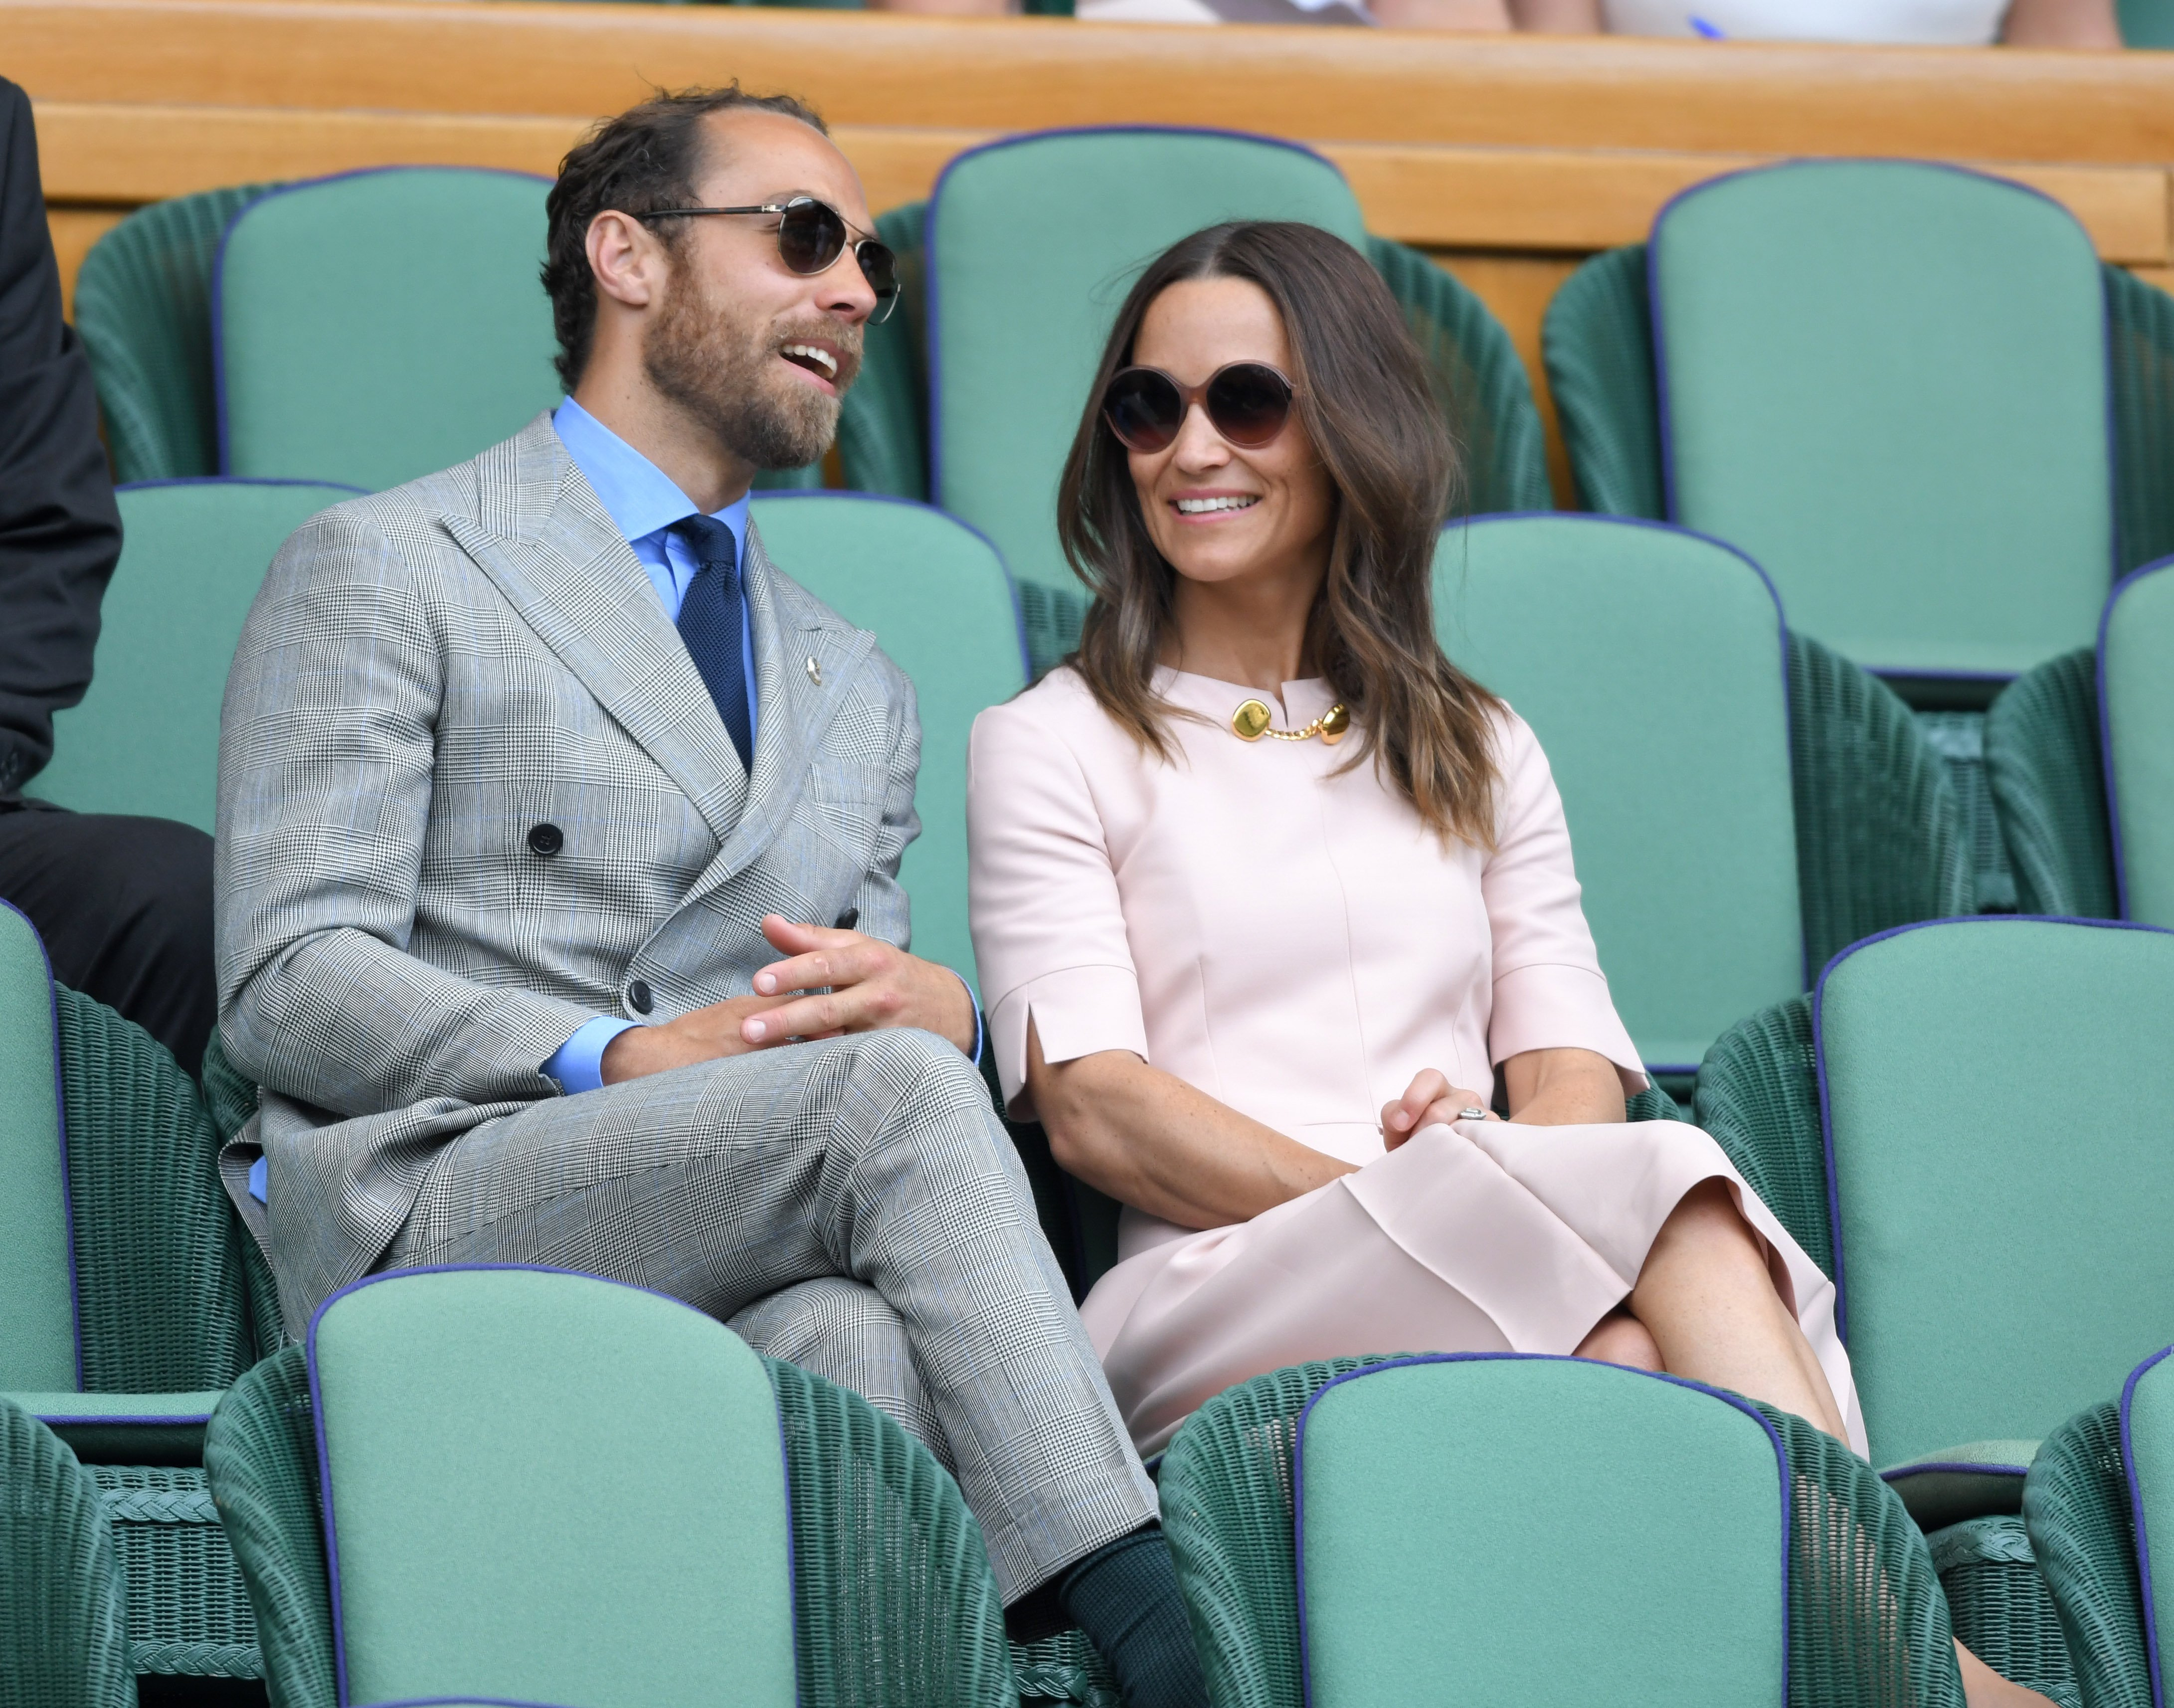 es Middleton et Pippa Middleton assistent à la septième journée des Championnats de tennis de Wimbledon | Source : Getty Images